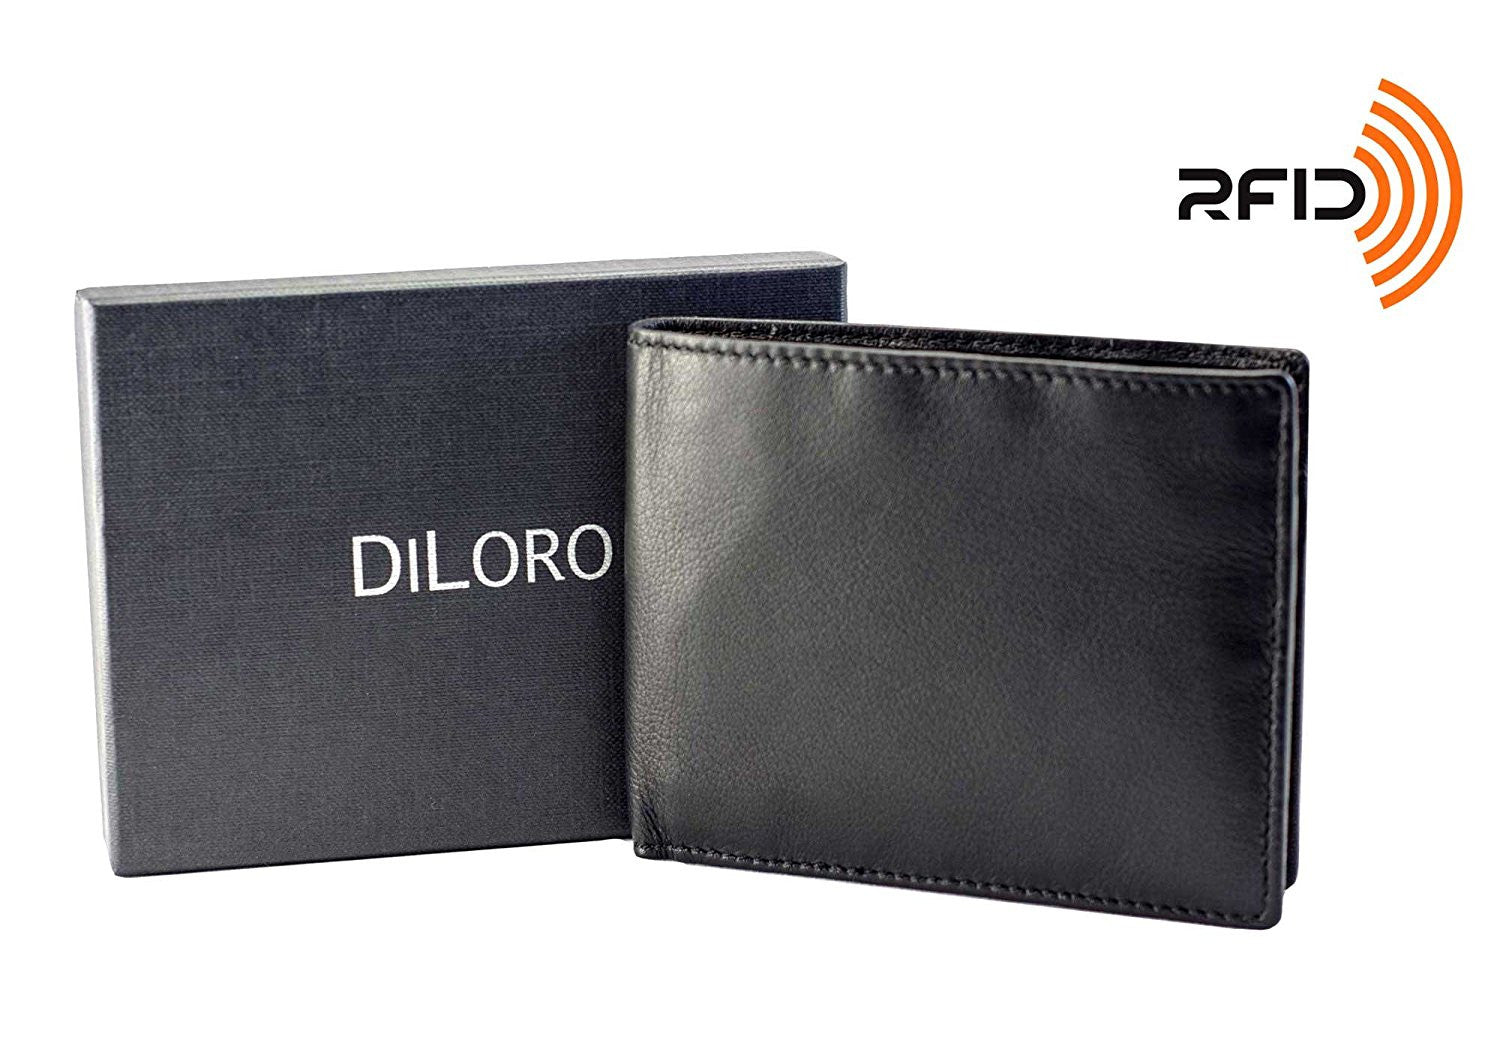 DiLoro Italy RFID Slim Bifold Nappa Leather Wallets for Men Back Slip Pocket Black